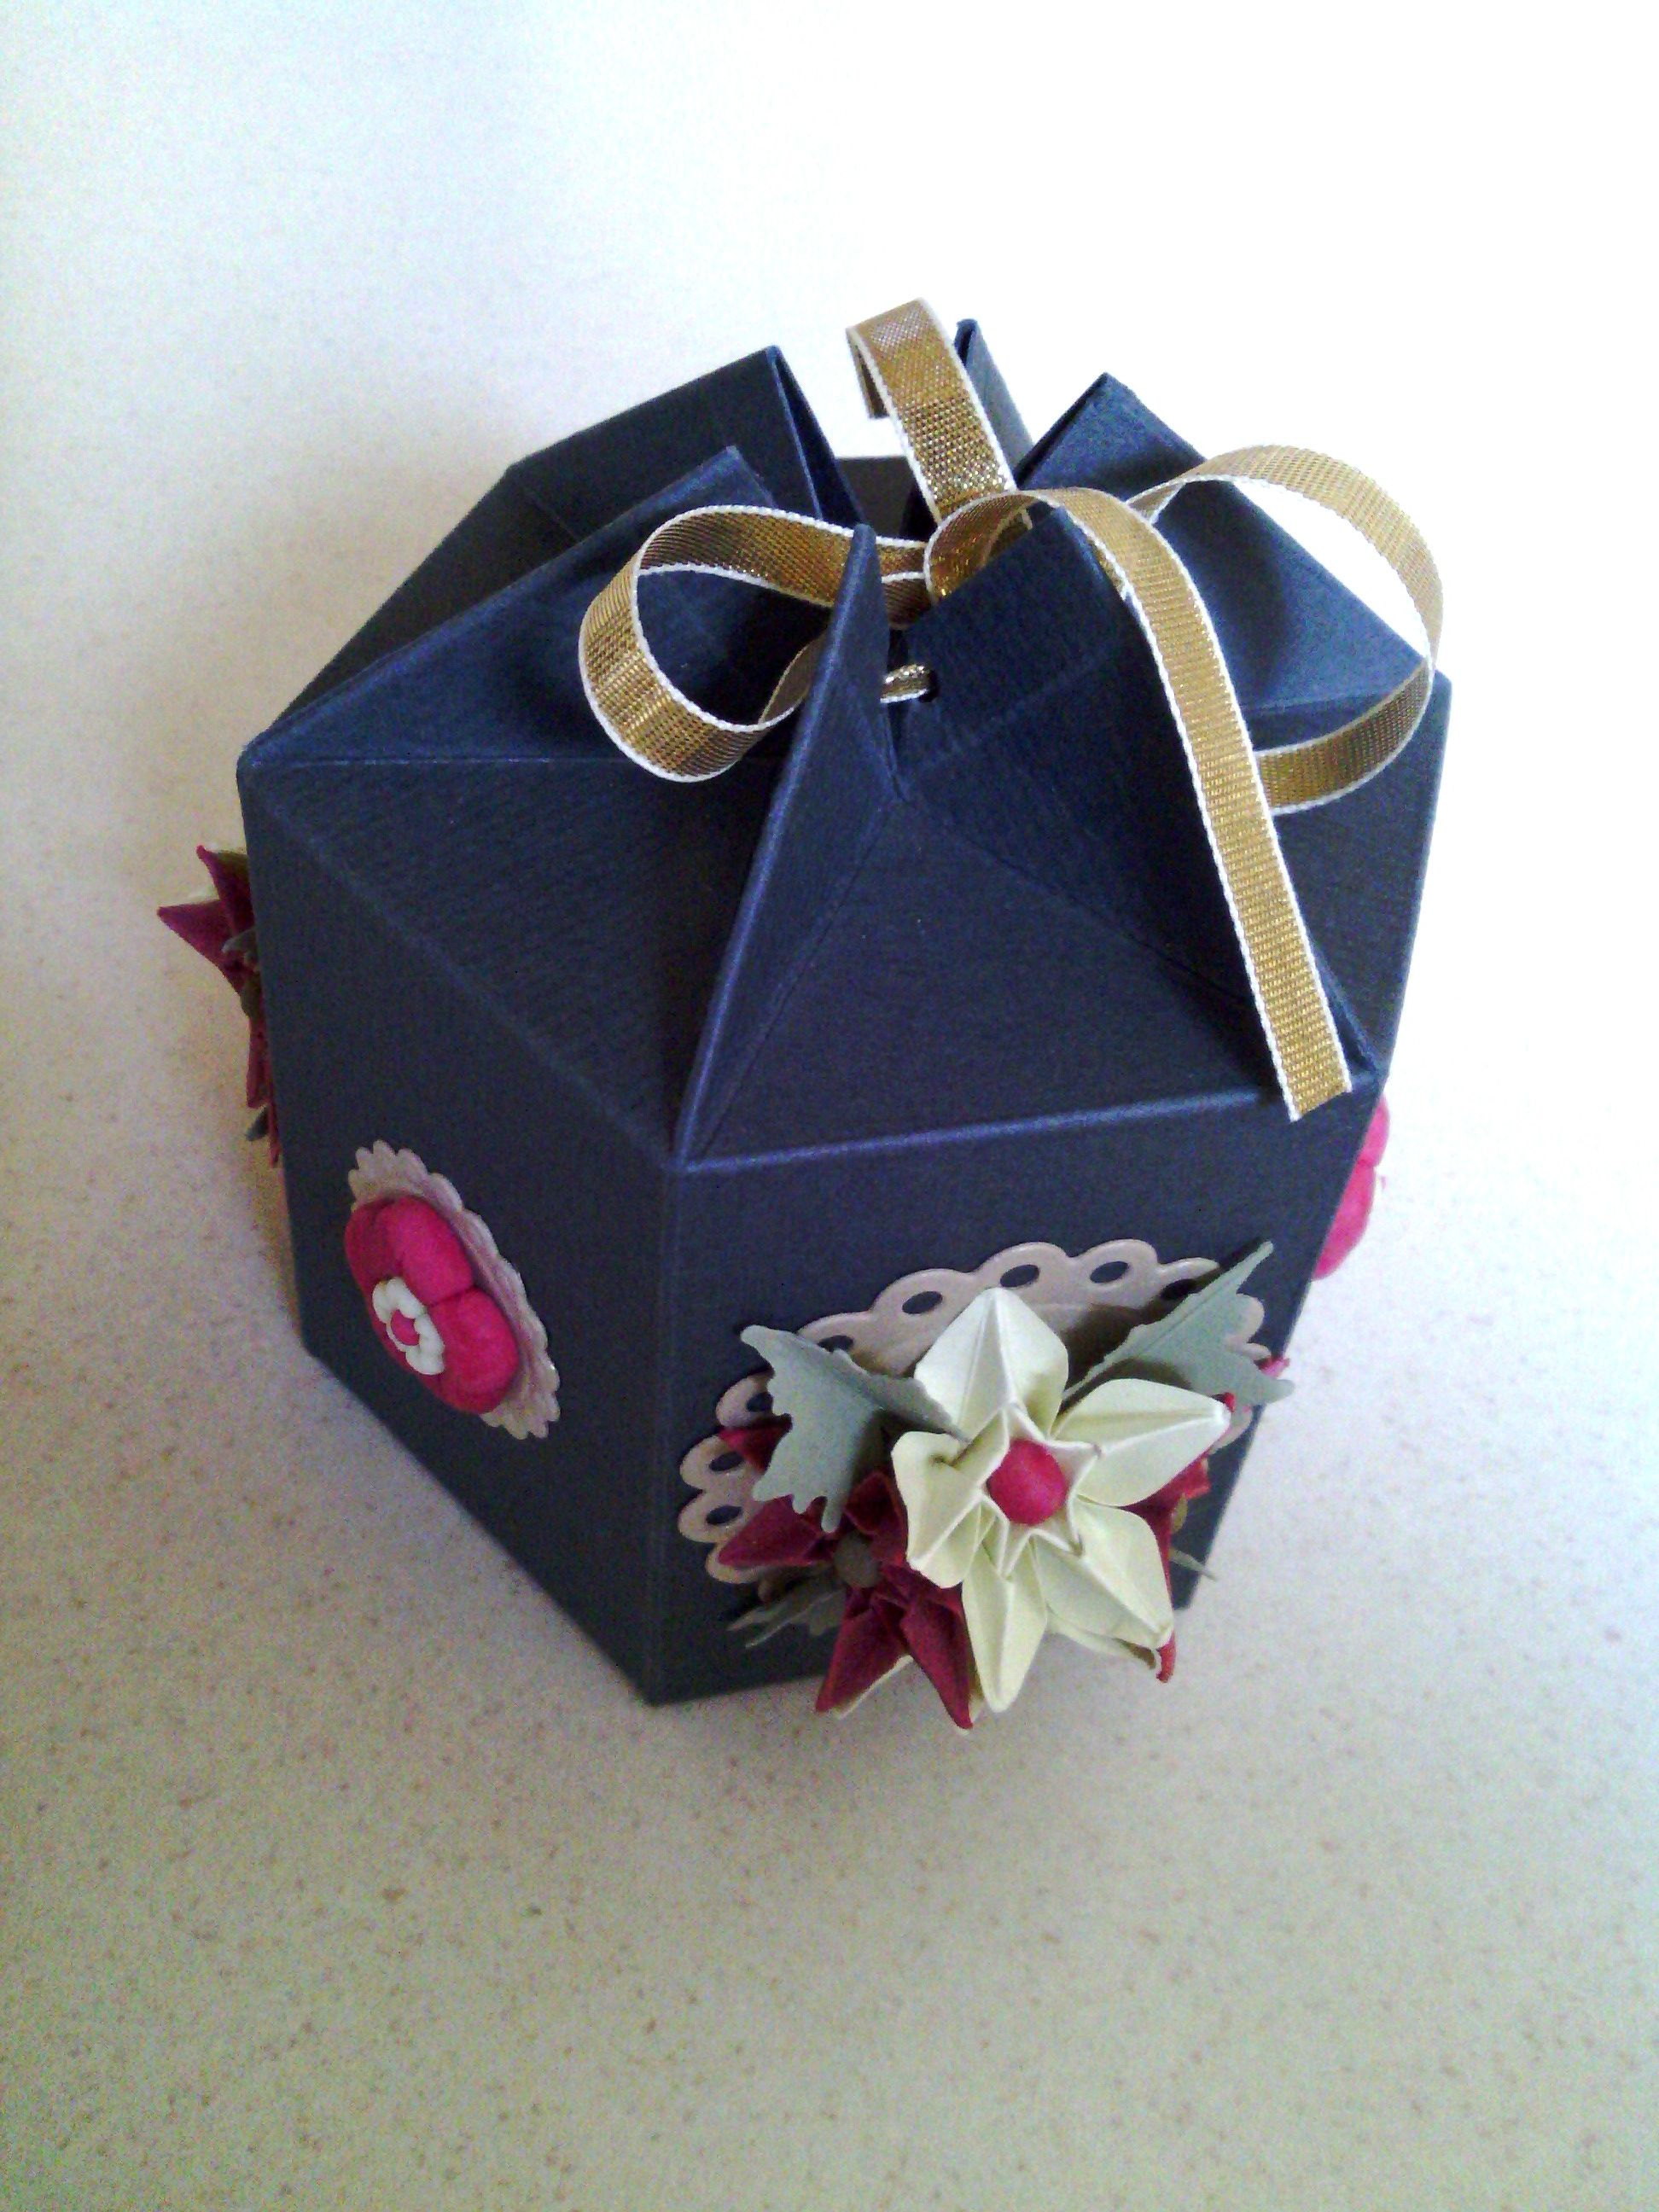 Gift Boxes Small Dark Green Hexagonal Box Embellished With